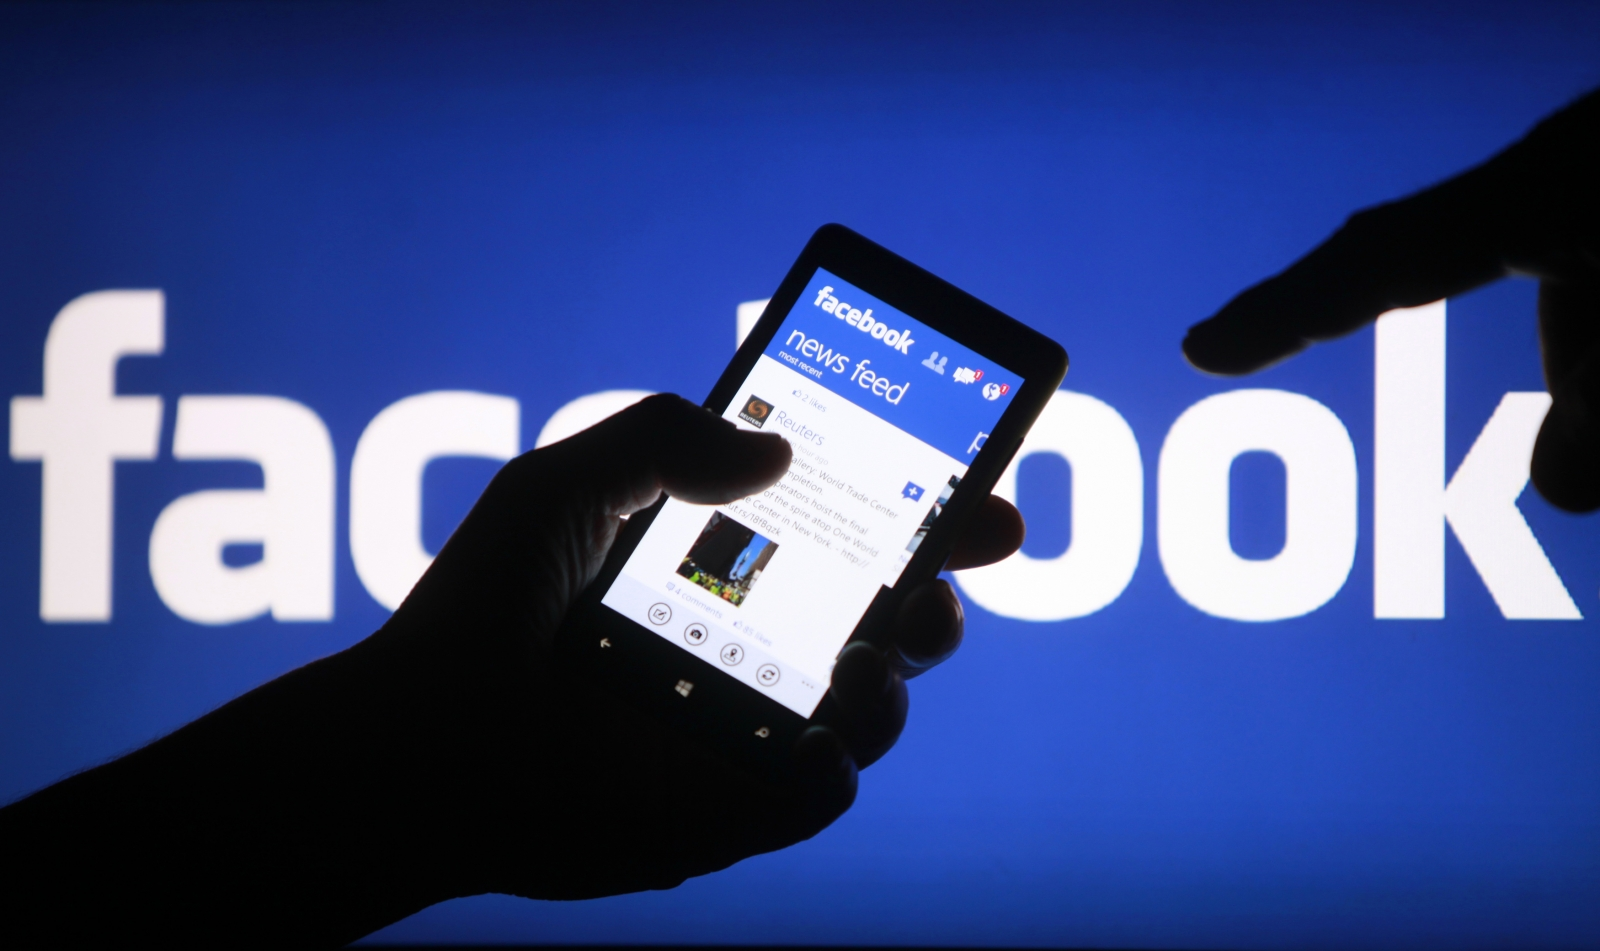 Facebook asked to cough up personal data on its users by governments around the world. Image Credit: IBTimes